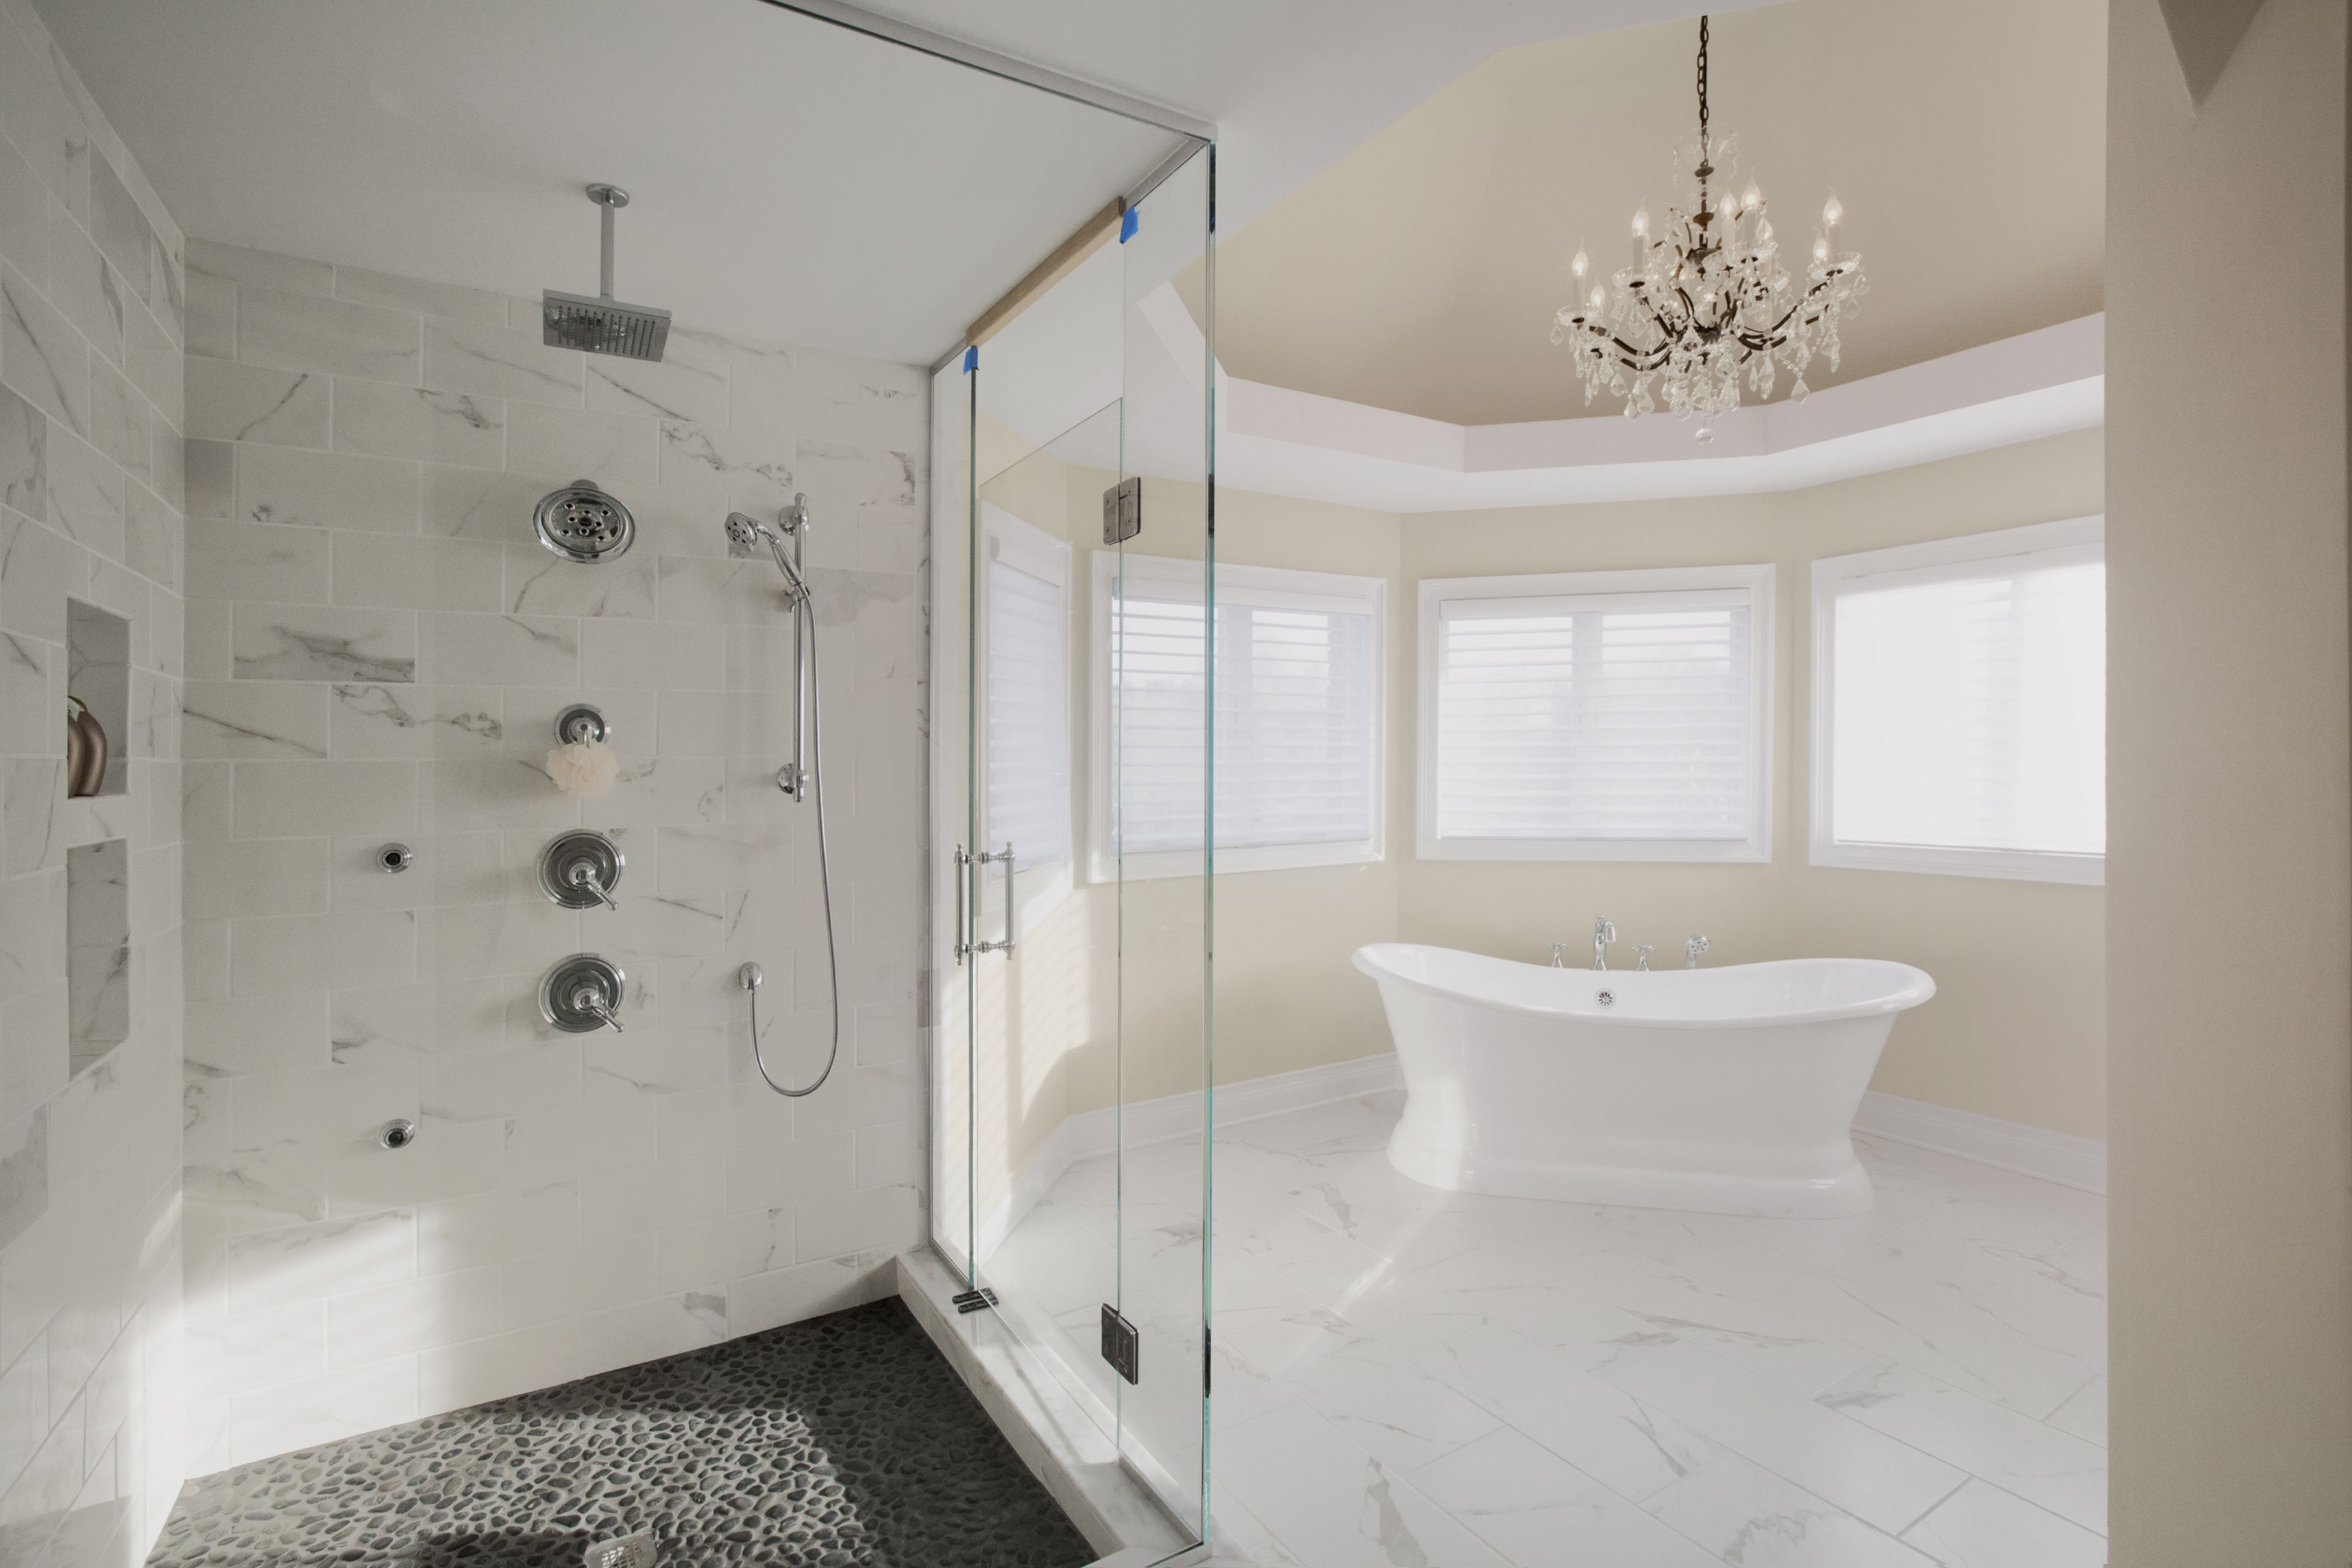 Freestanding bathtub with a chandelier – what could be more